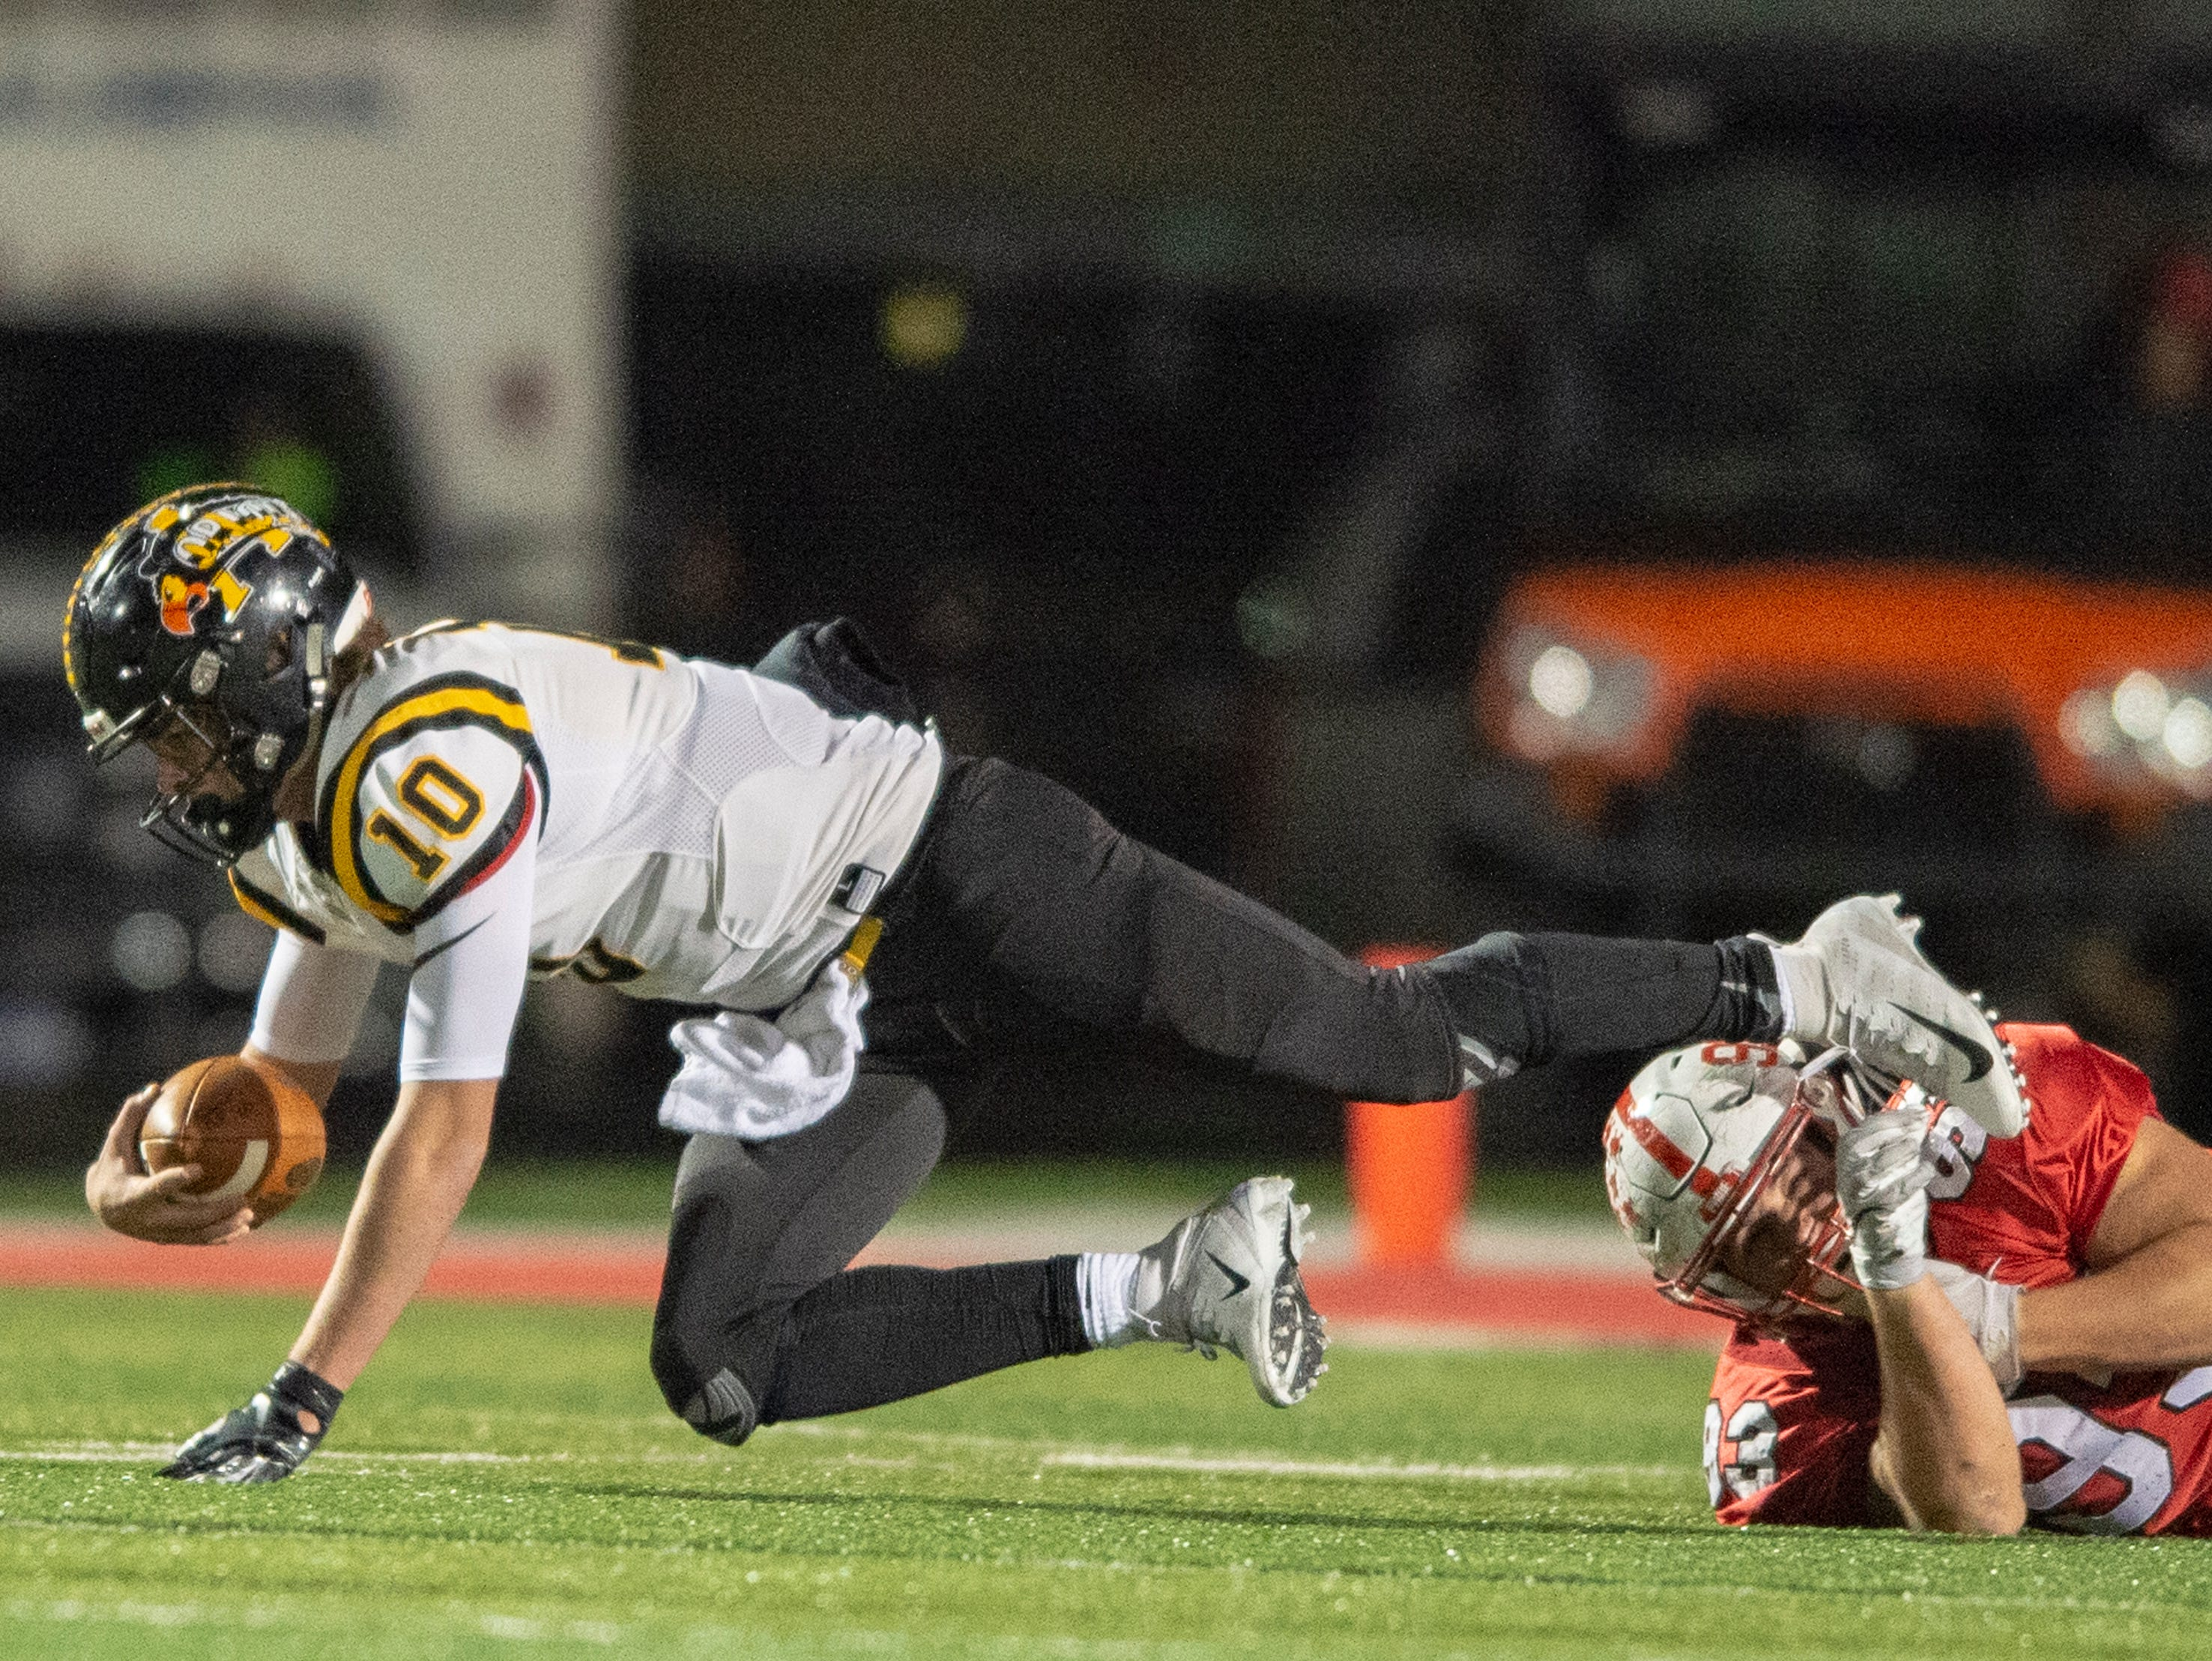 Avon High School sophomore Henry Hesson (10) is tripped up by Center Grove High School senior Lucas Hunter (93) during the first half of action. Center Grove High School hosted Avon High School in an IHSAA Class 6A Regional Championship varsity football game, Friday, Nov. 9, 2018.